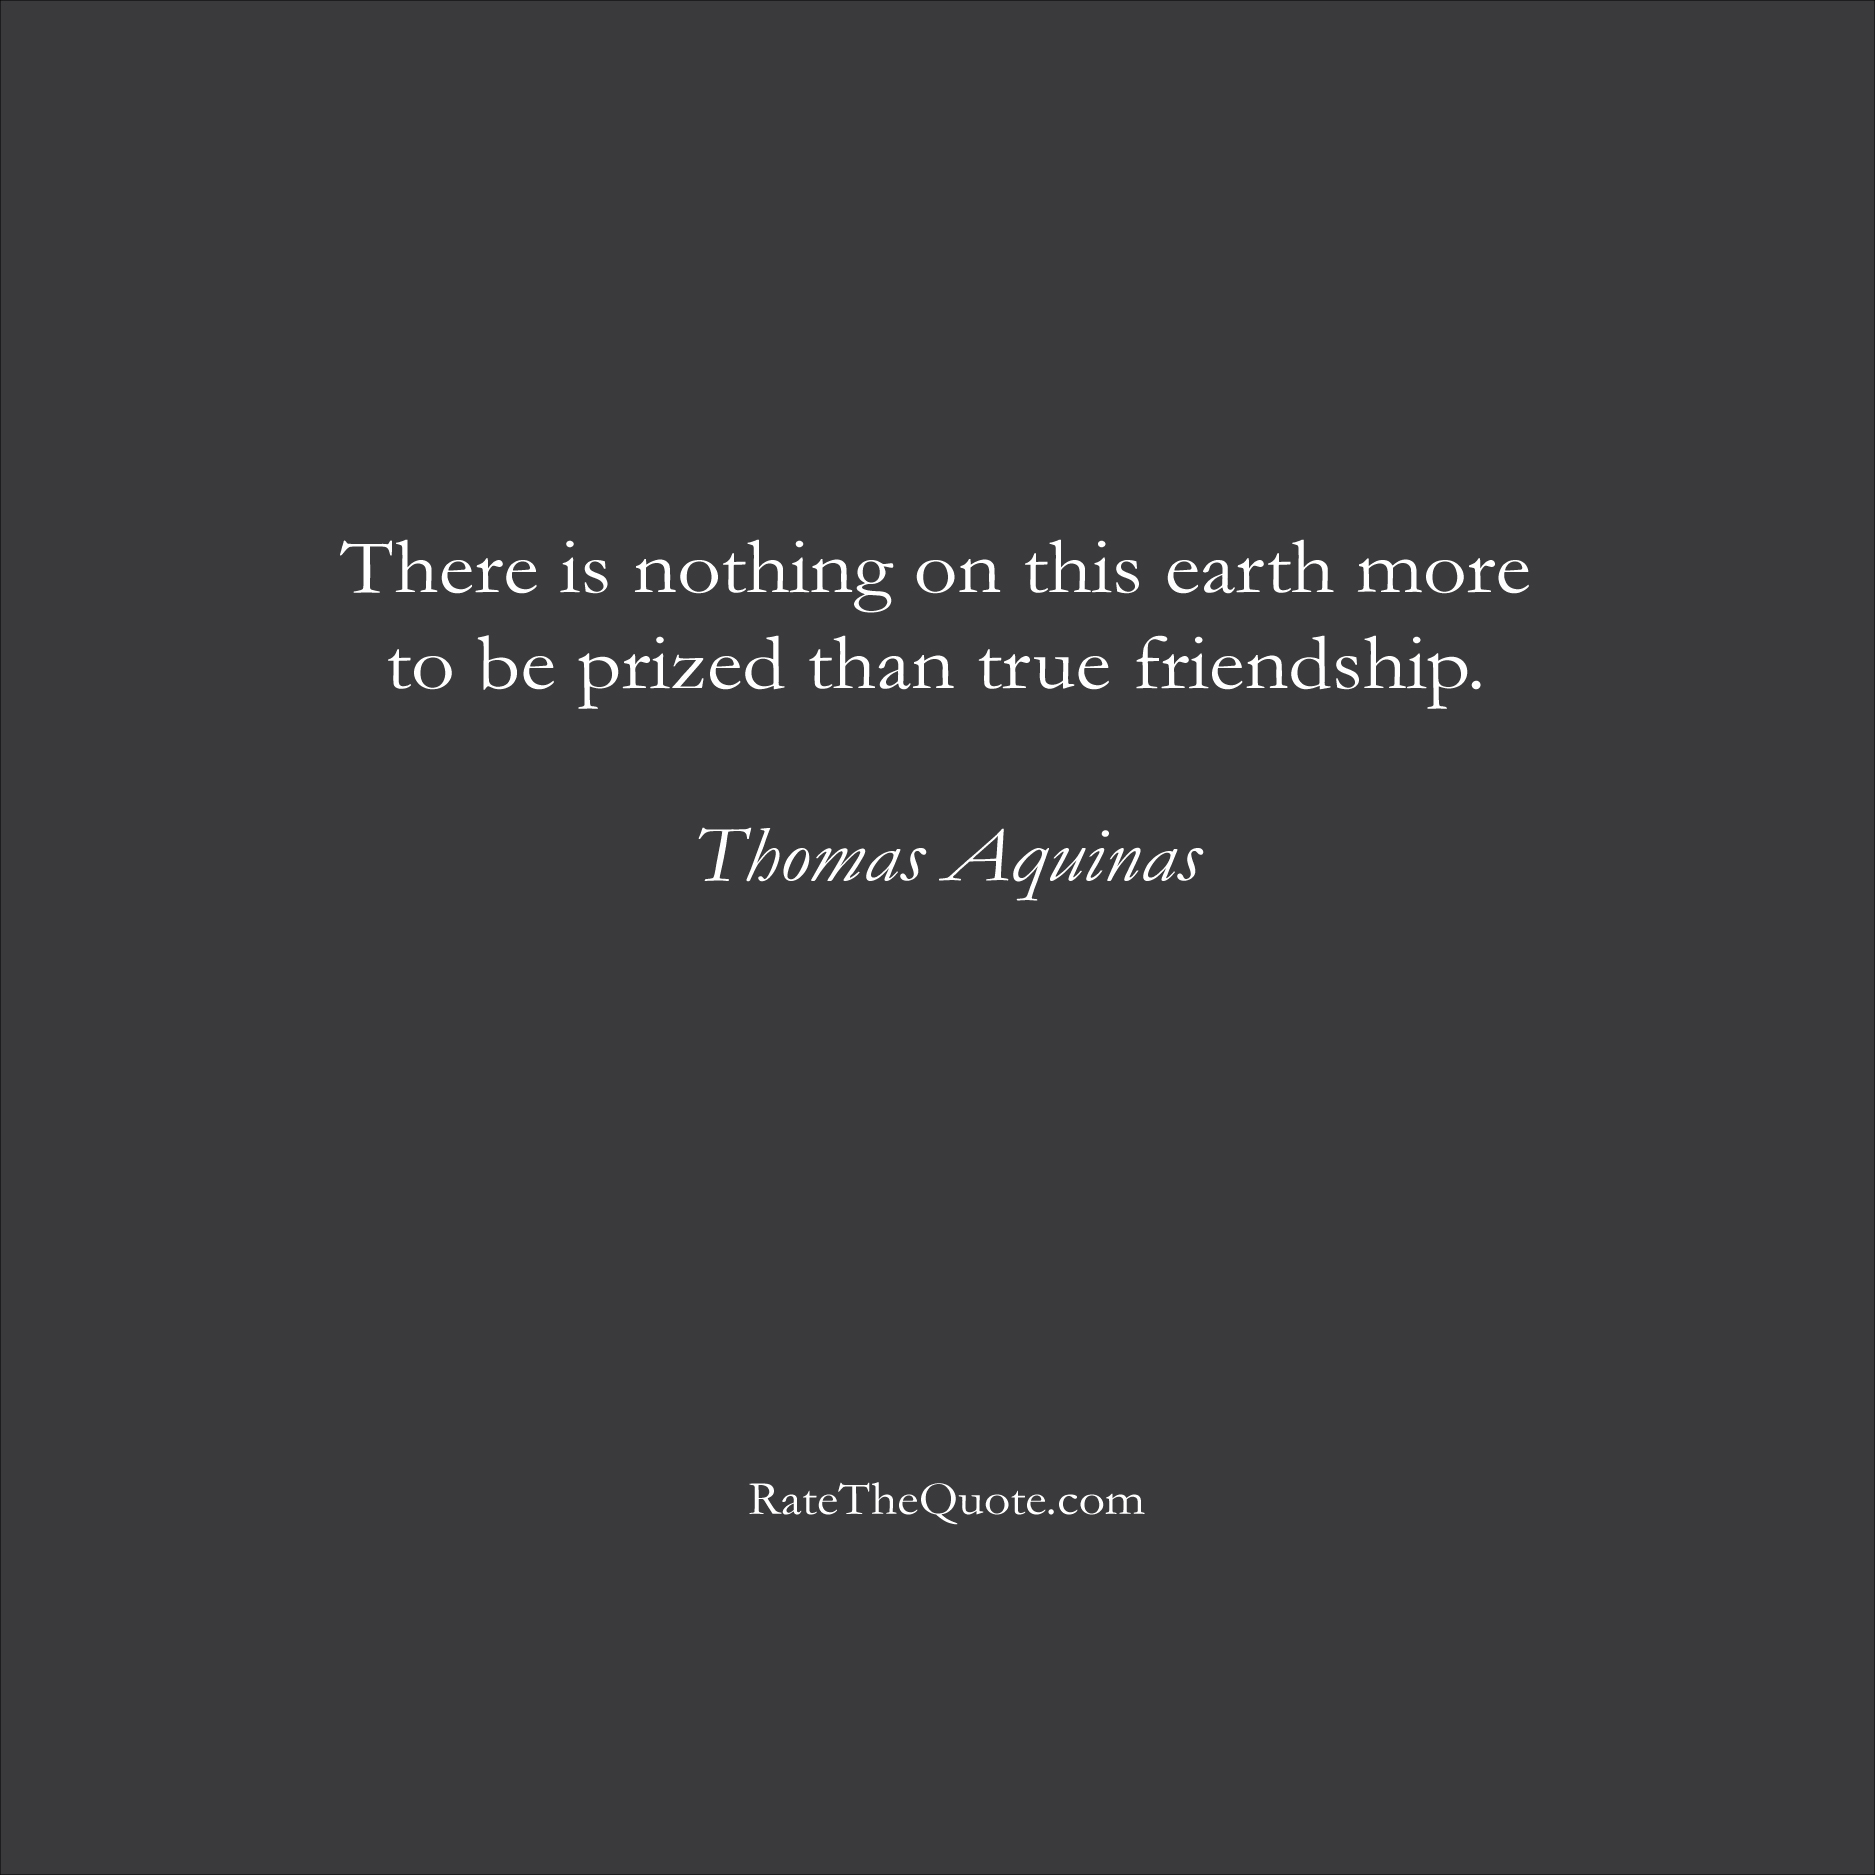 Quotes About Real Friendship Friendship Quotes Archives  Ratethequote